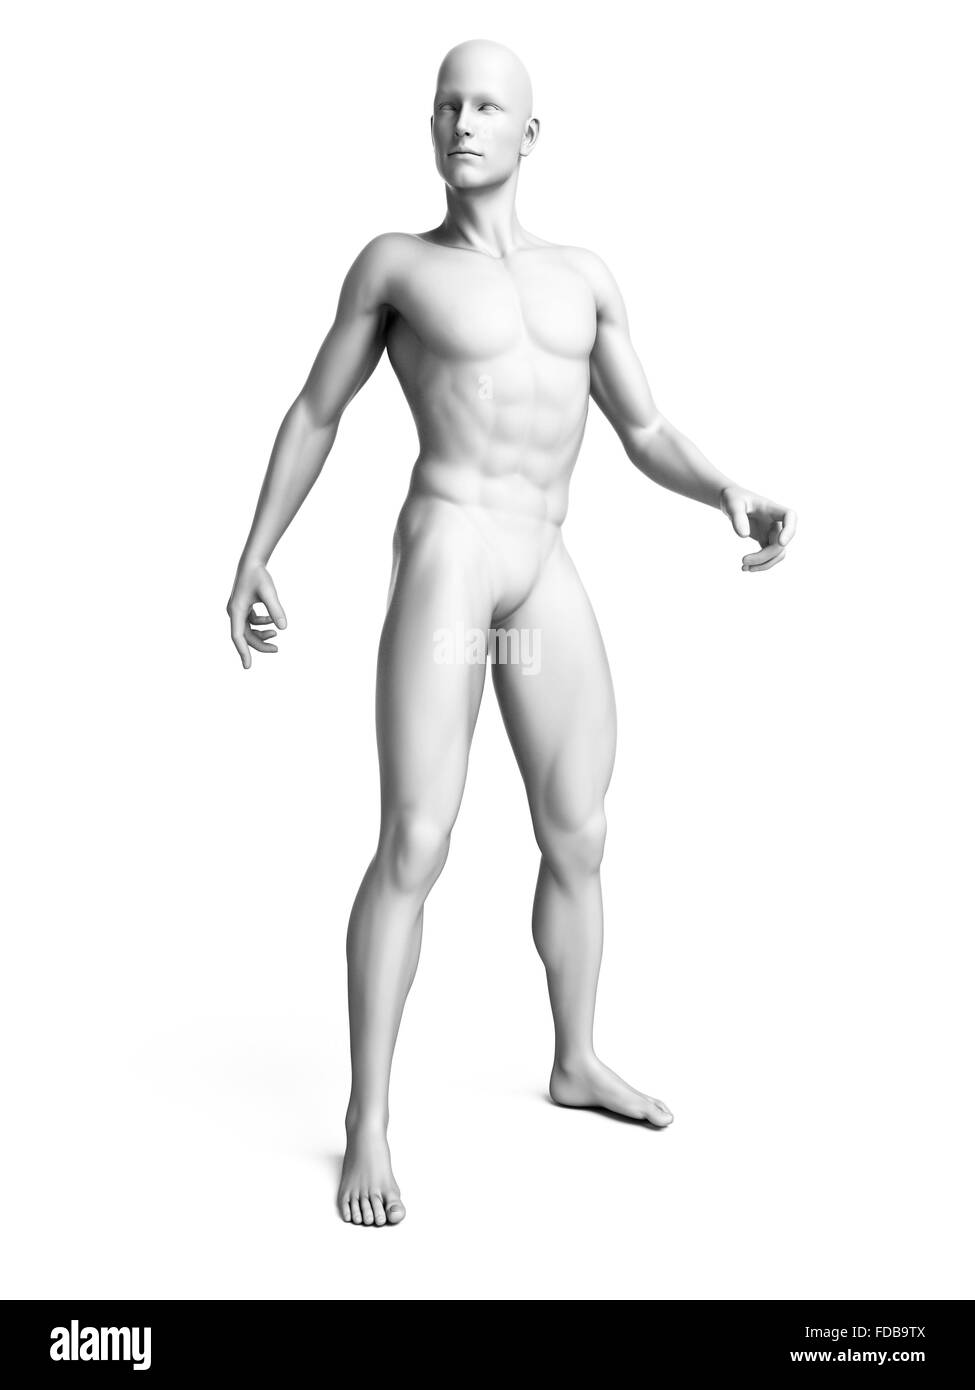 Anatomy of a man standing, illustration Stock Photo: 94291594 - Alamy